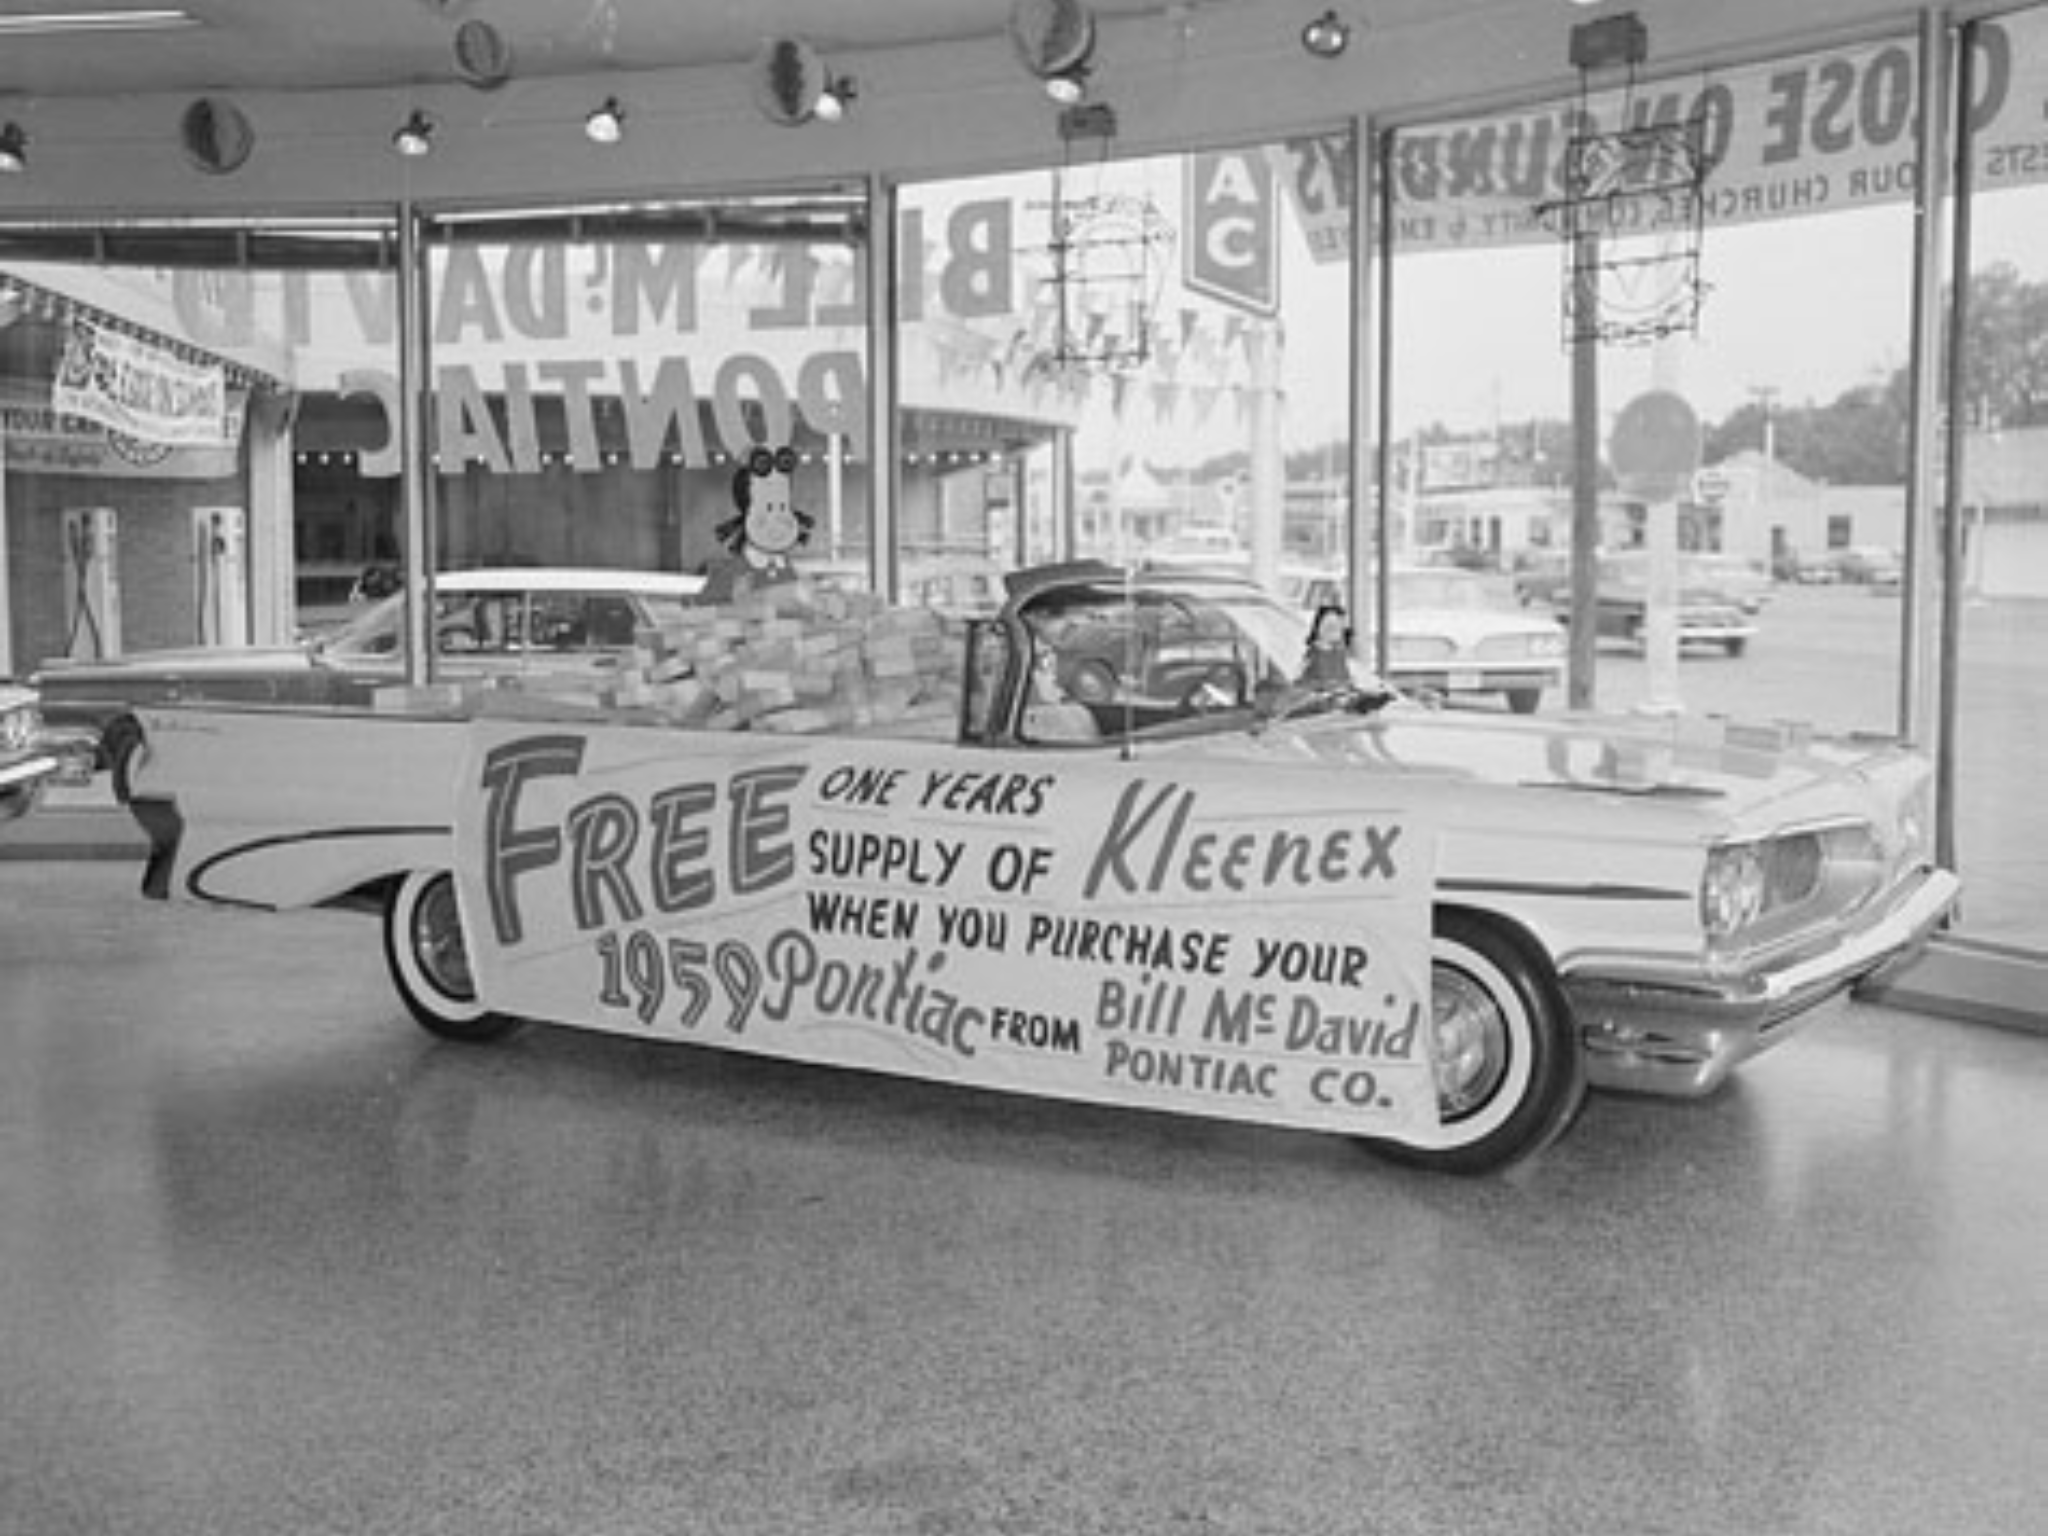 1959 Bill Mcdavid Pontiac Co Dealership Showroom Fort Worth